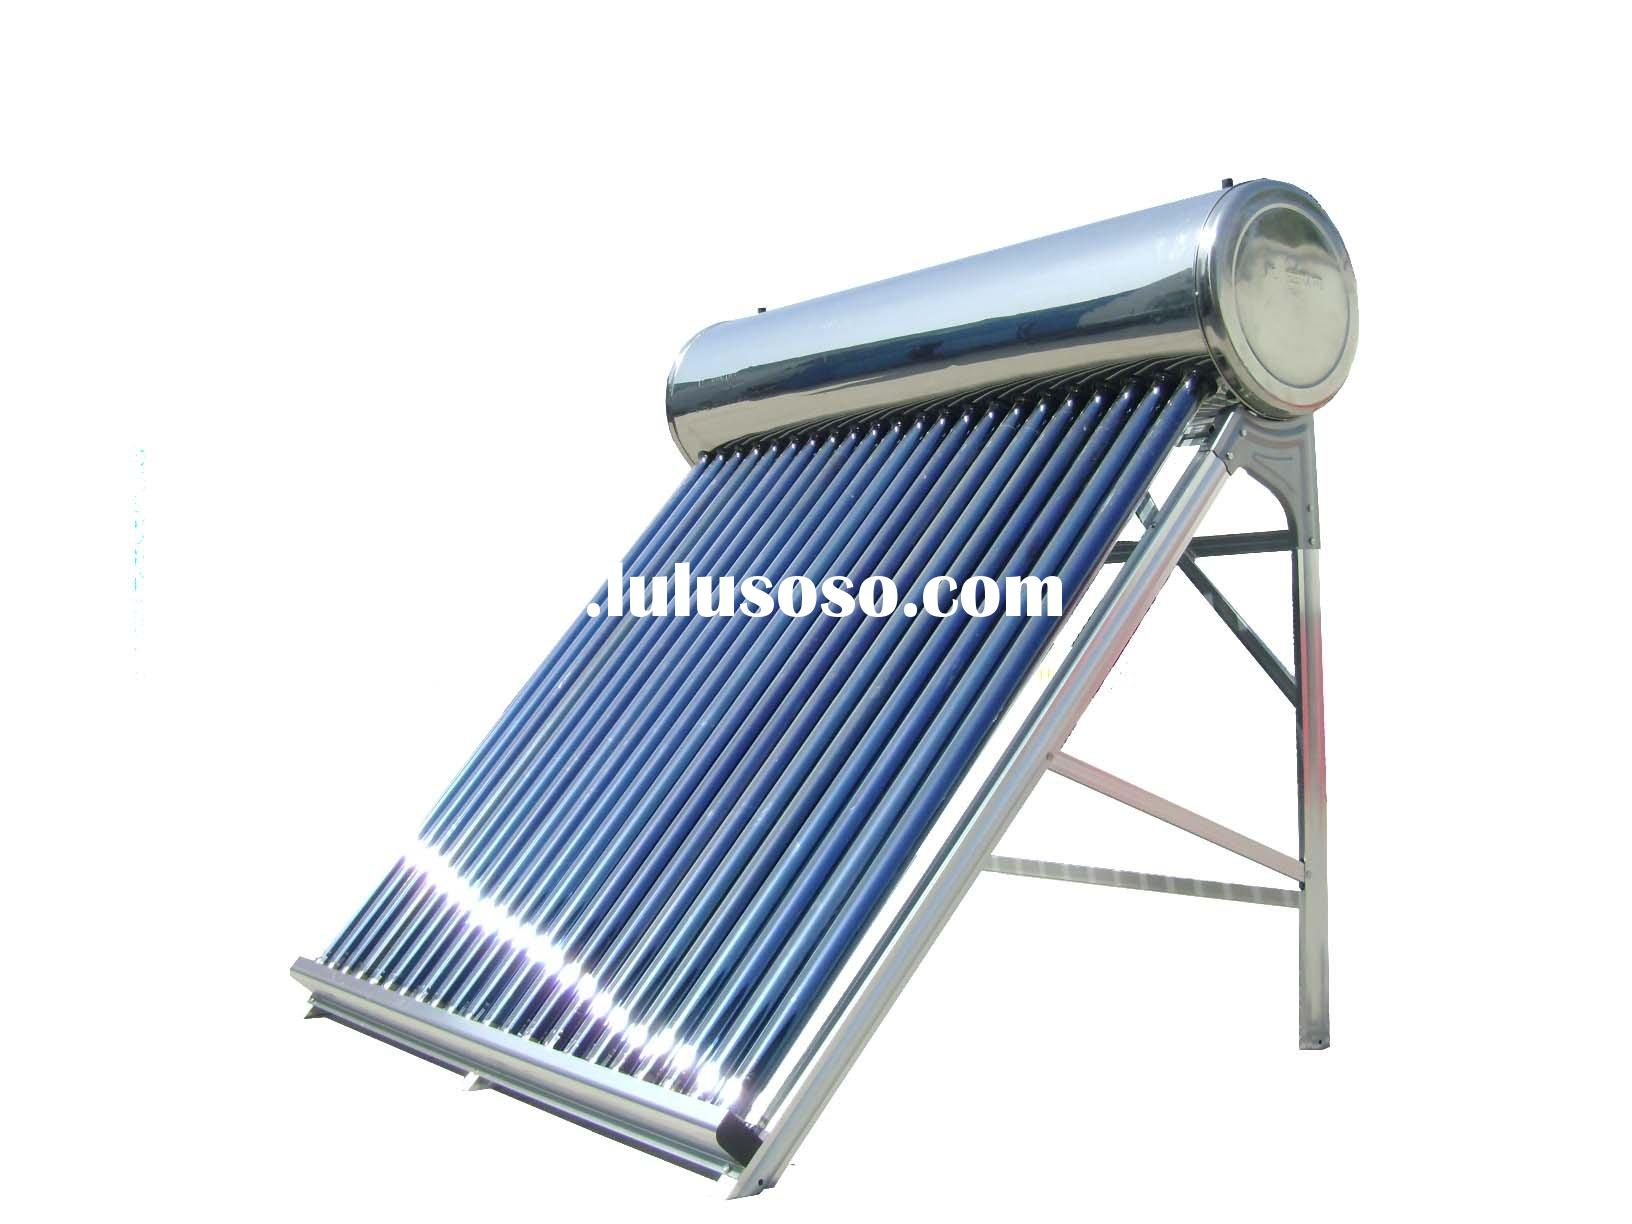 Unpressure solar water heater ,stainless steel solar water heater